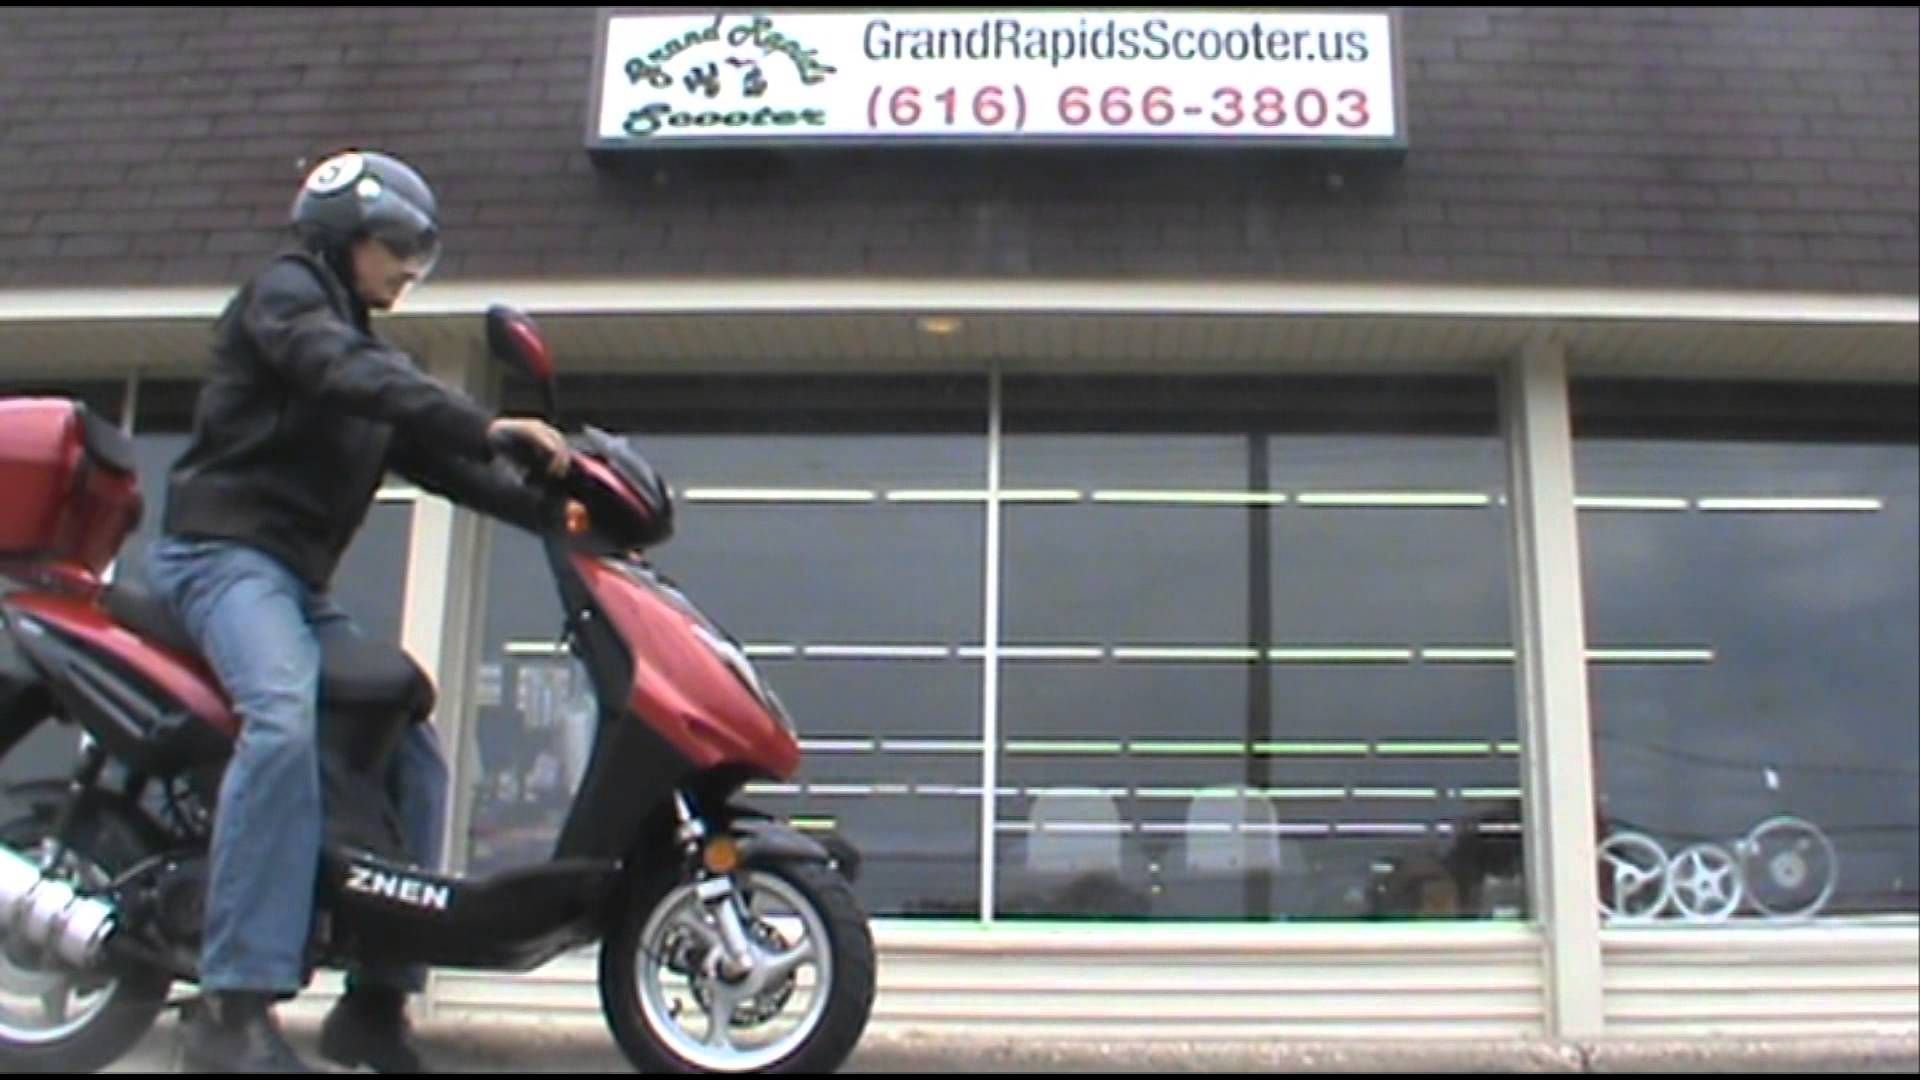 This Znen built Supremo scooter is built to last! The